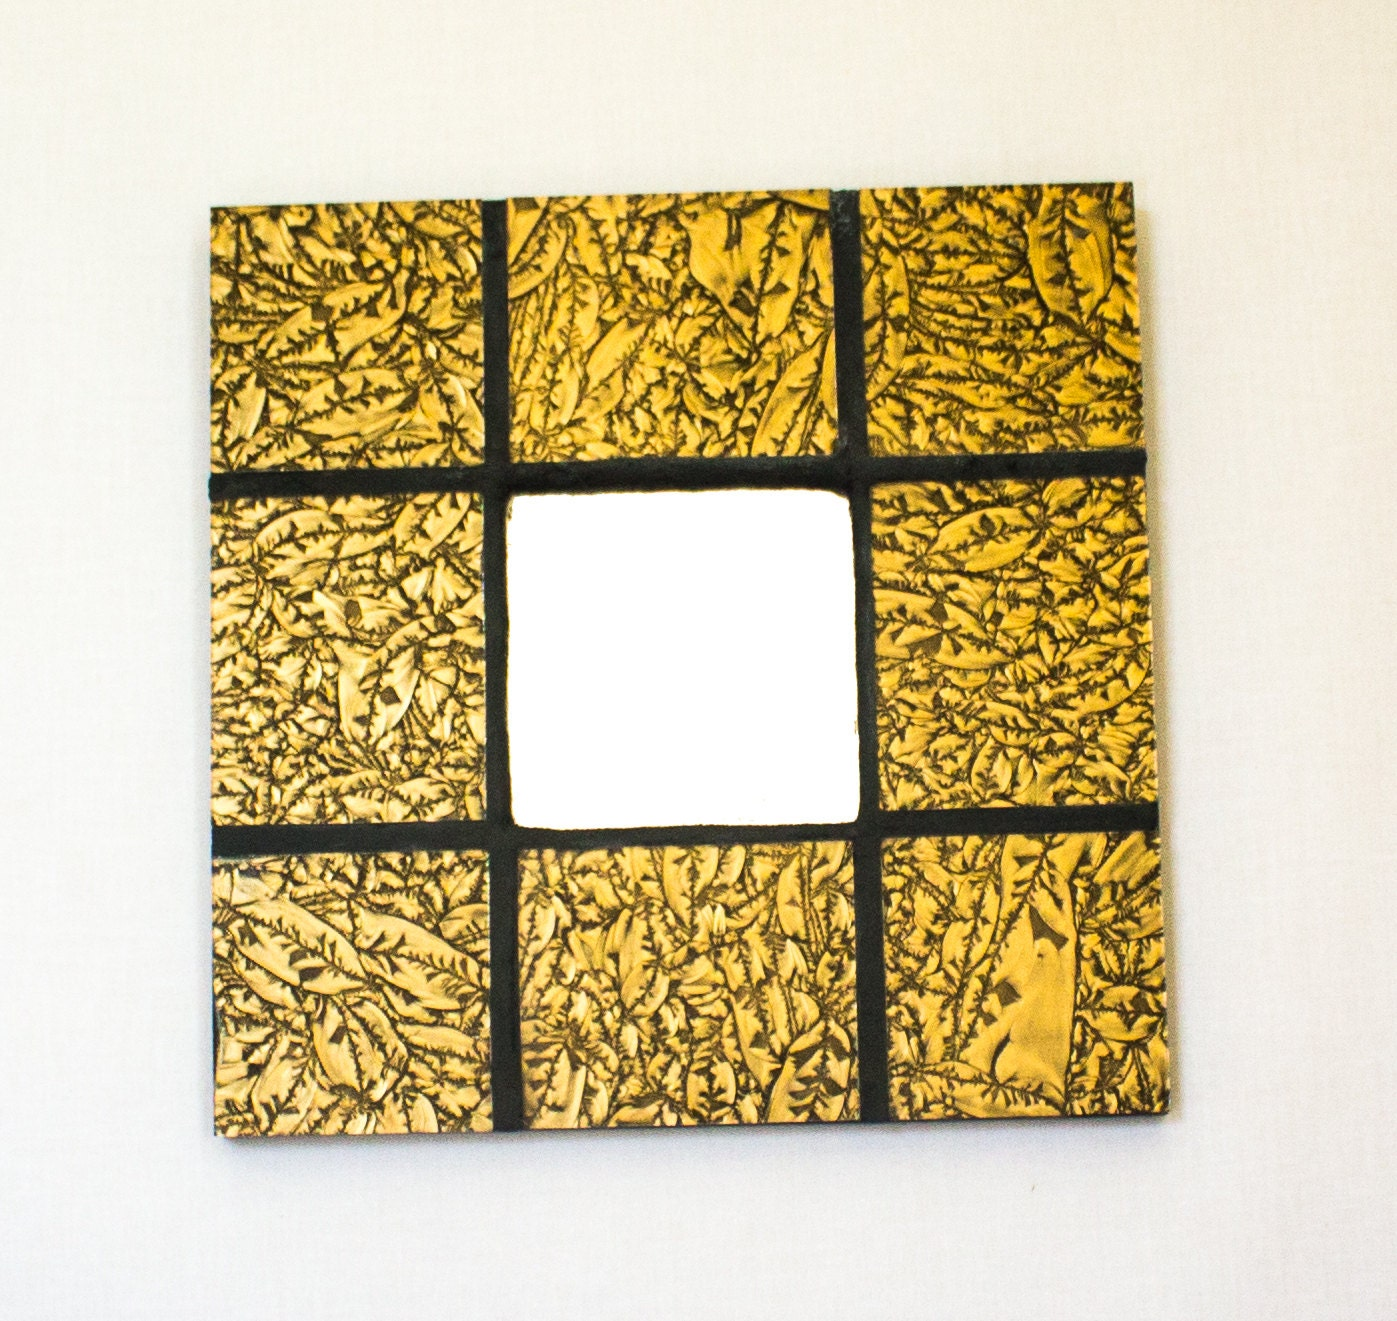 Gold Wall Mirror Stained Glass Mosaic Art Gold Home Decor